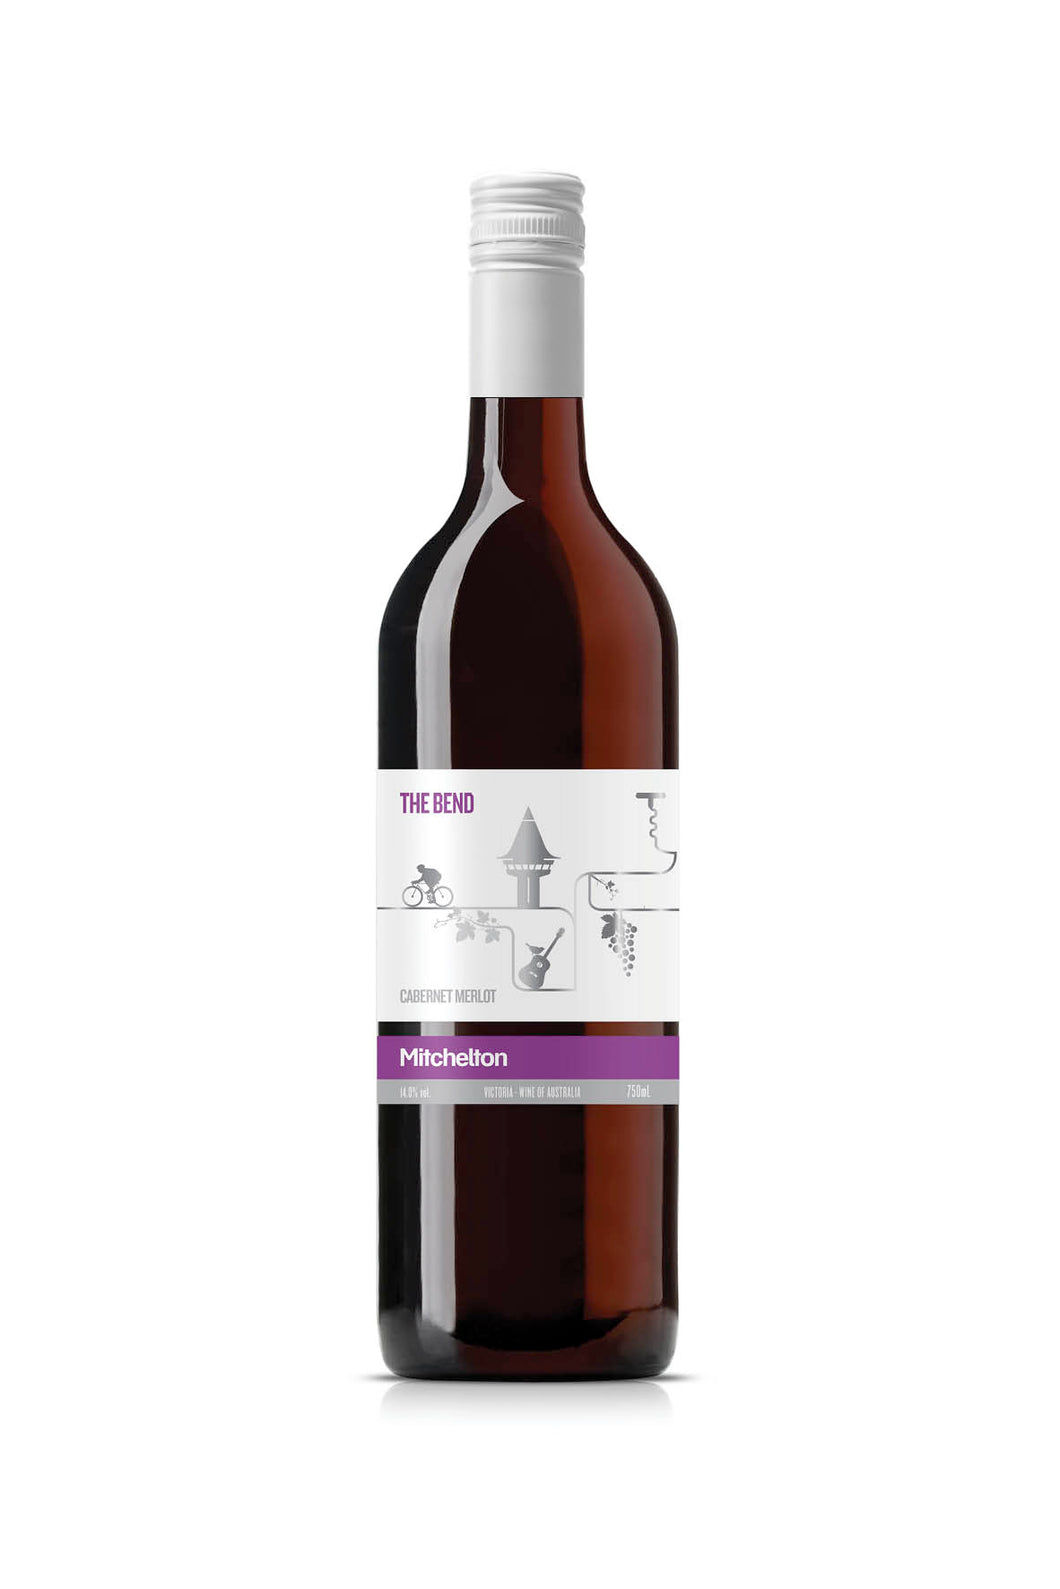 MITCHELTON THE BEND CAB MERLOT 2014